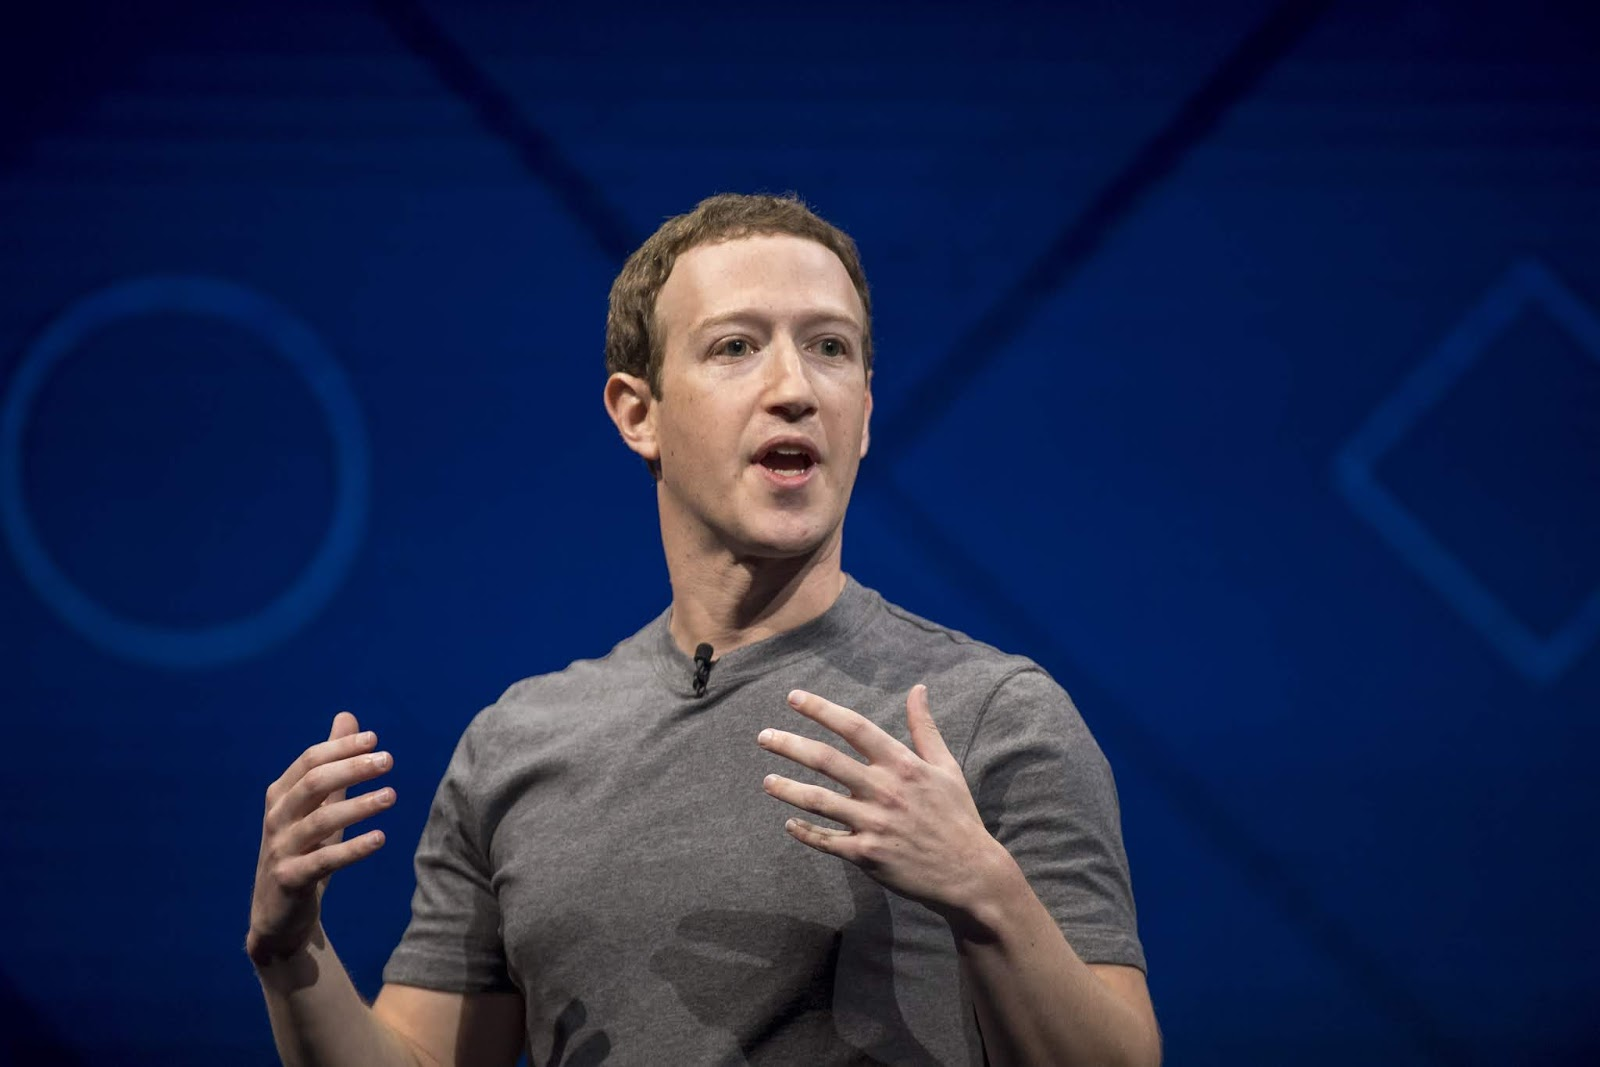 Facebook CEO Mark Zuckerberg Plans Public Debates About Technology